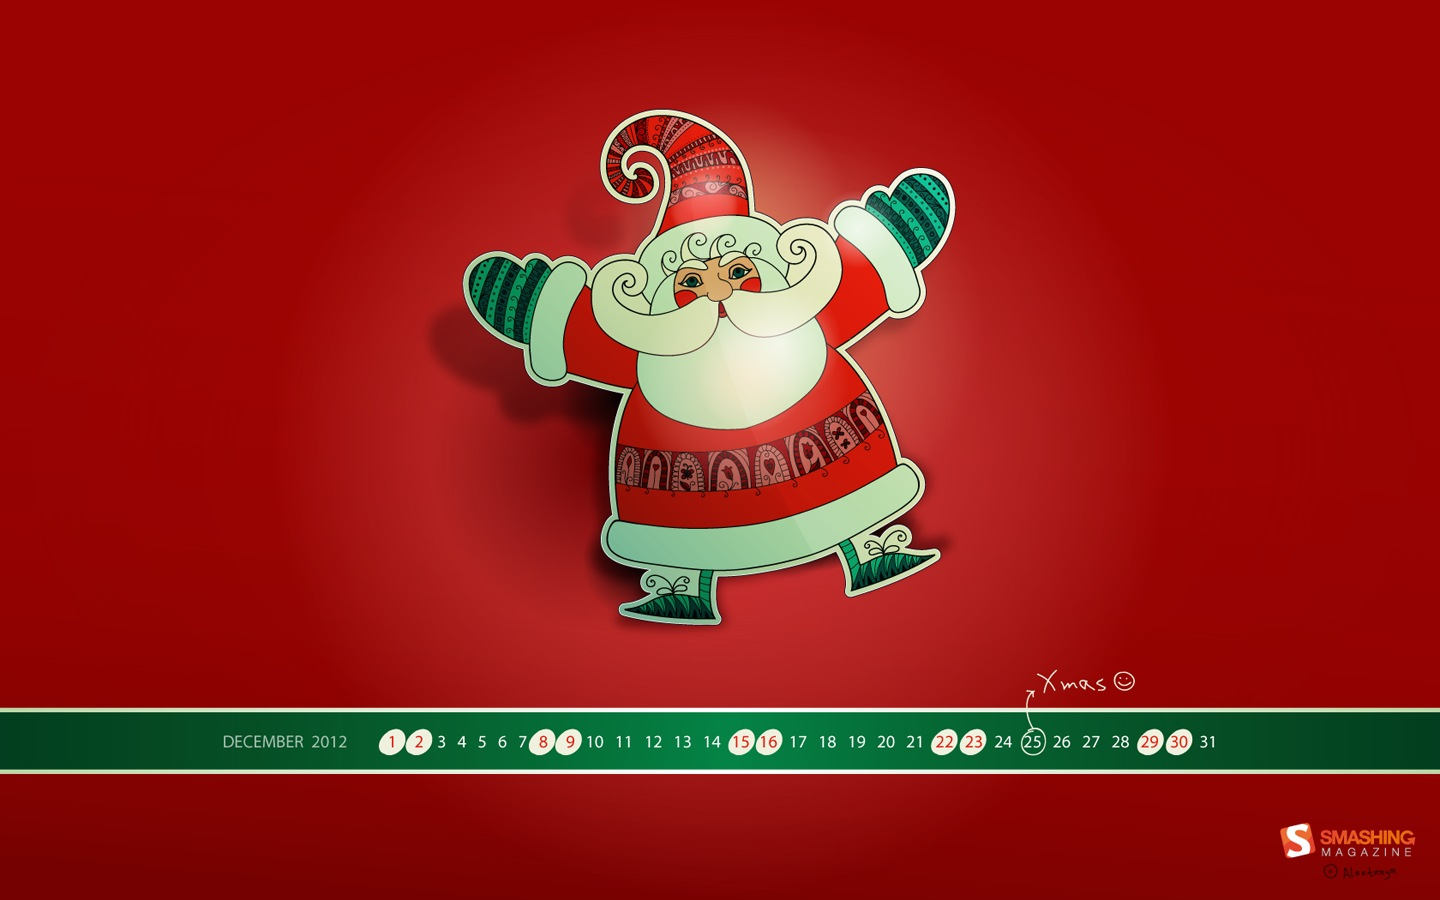 Years Christmas theme Calendar Wallpaper 32060